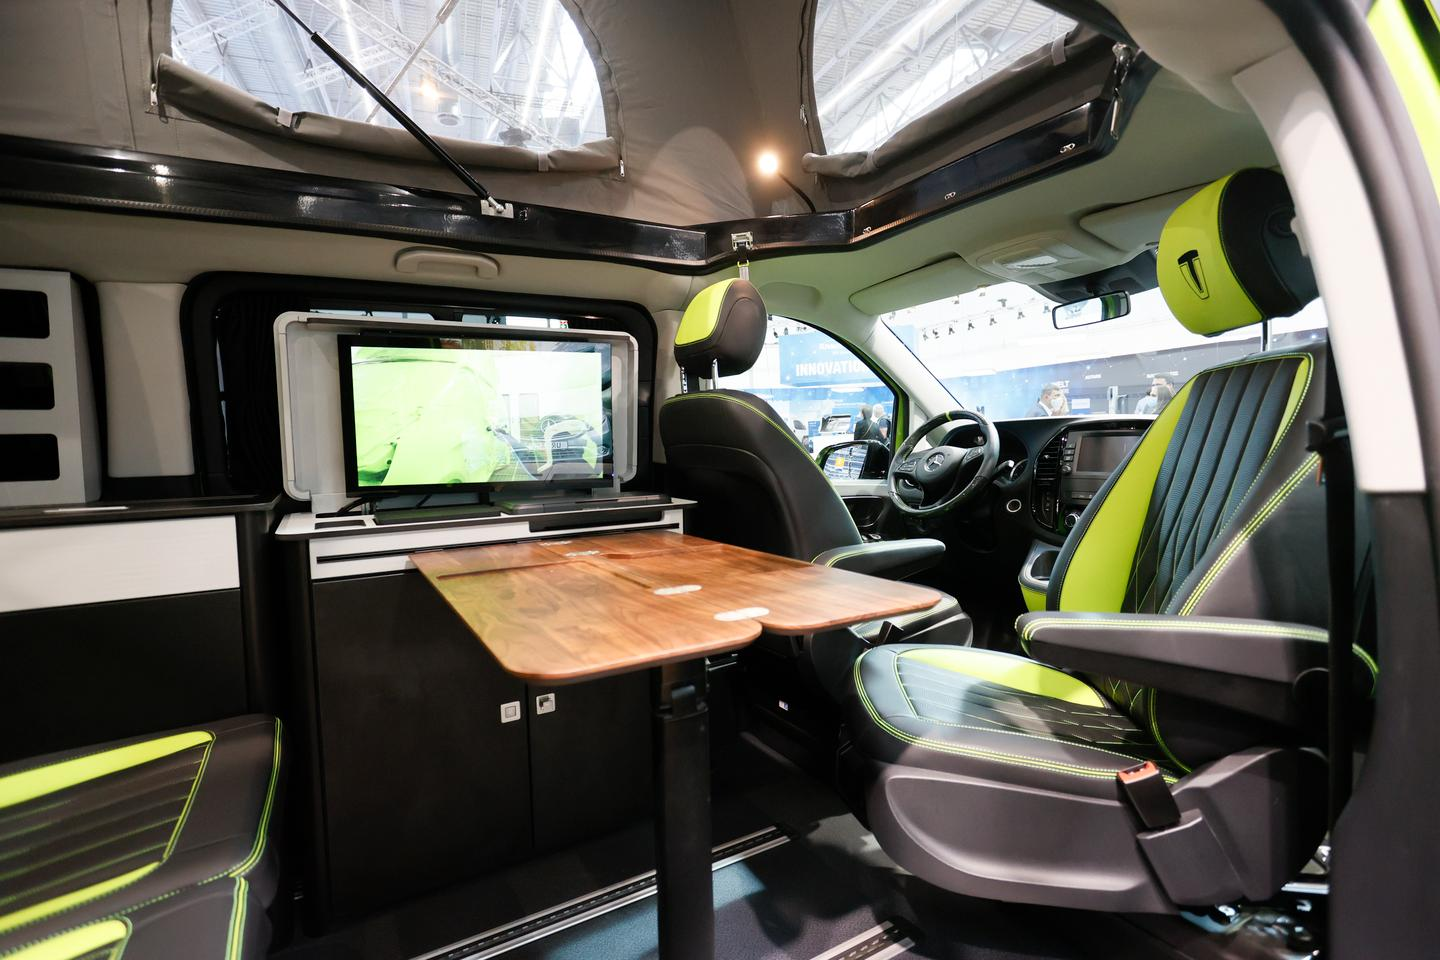 The office unit presses up against the driver's seat more than the kitchen, but the passenger seat still swivels around to complete a three-person work space